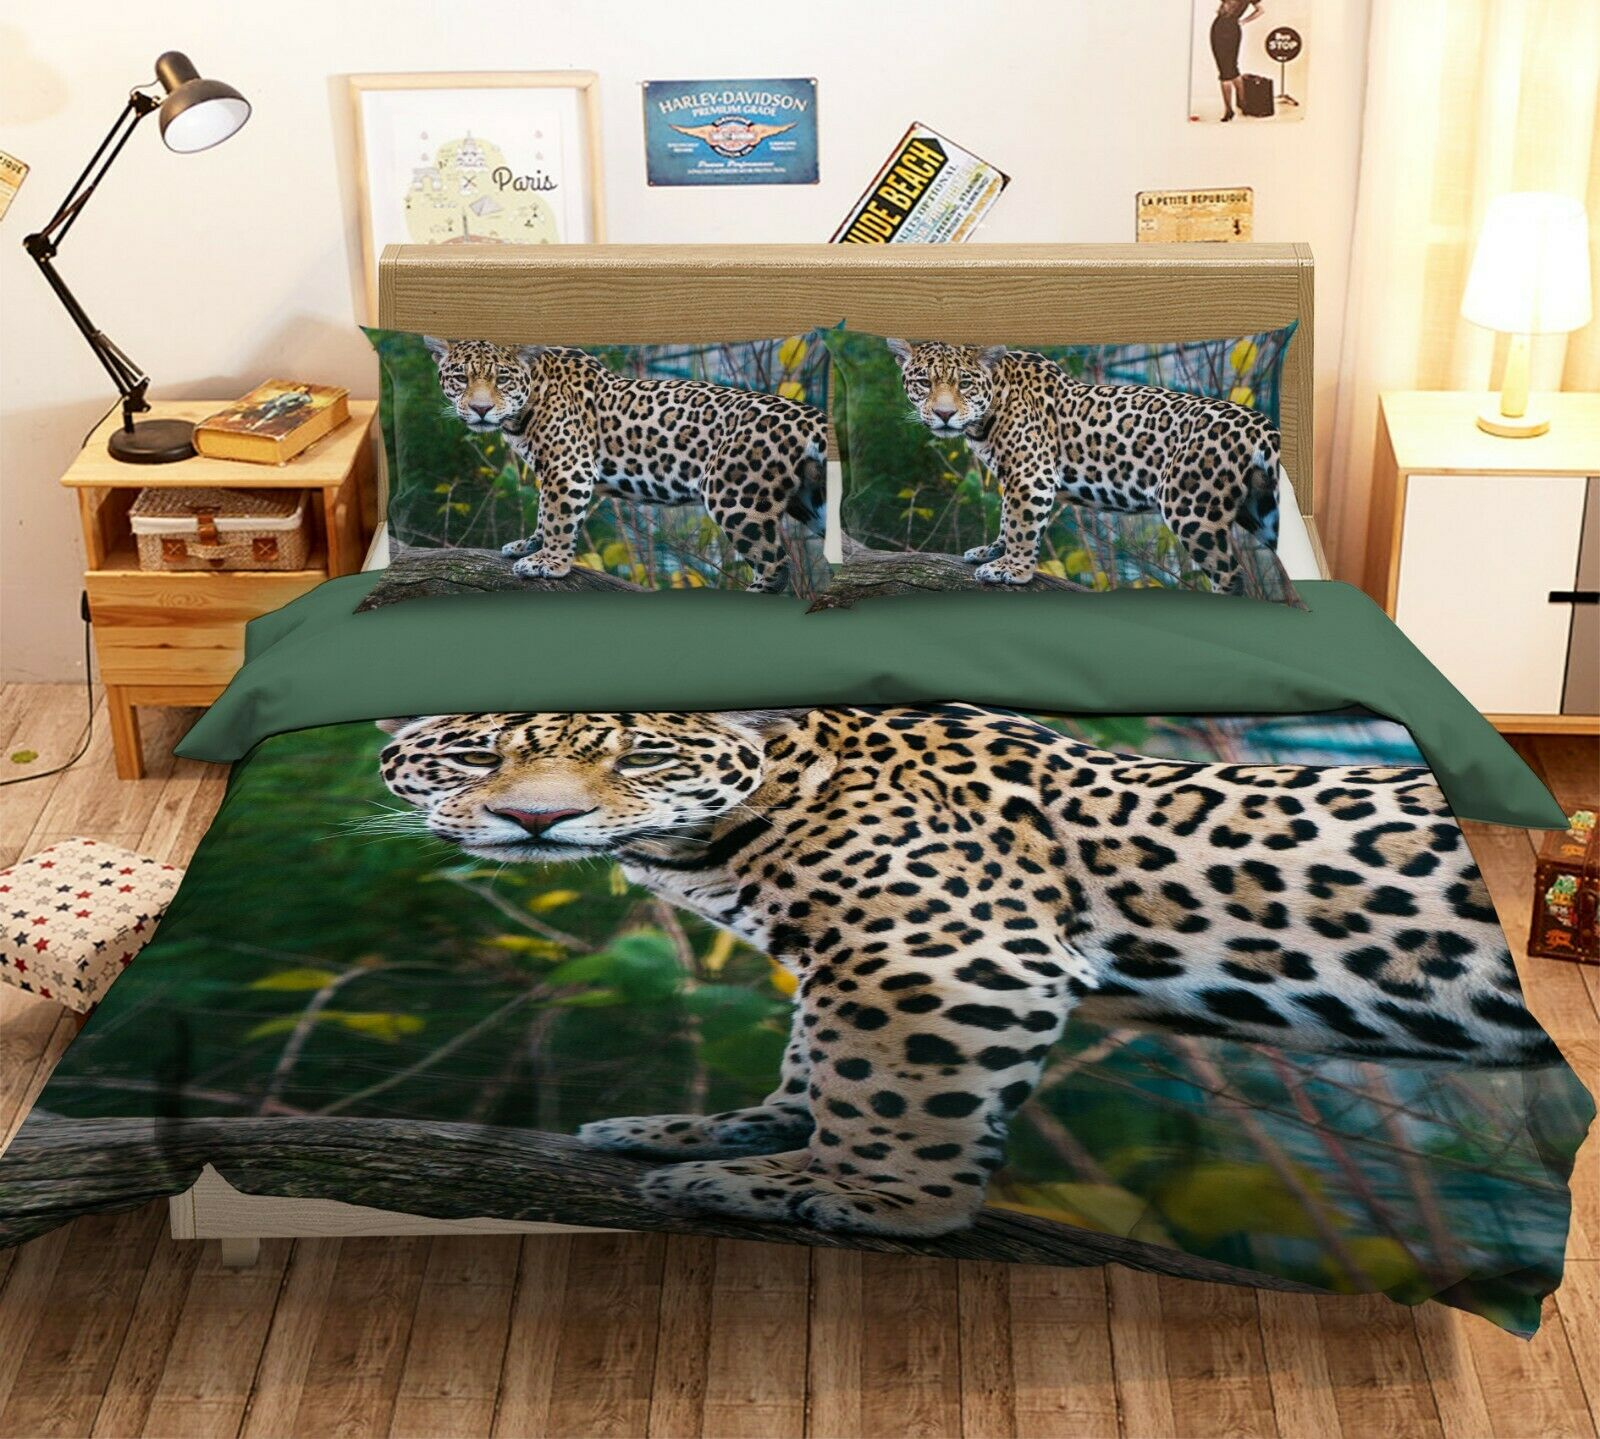 3D Leopard N22 Animal Bed Pillowcases Quilt Duvet Cover Queen King Amy